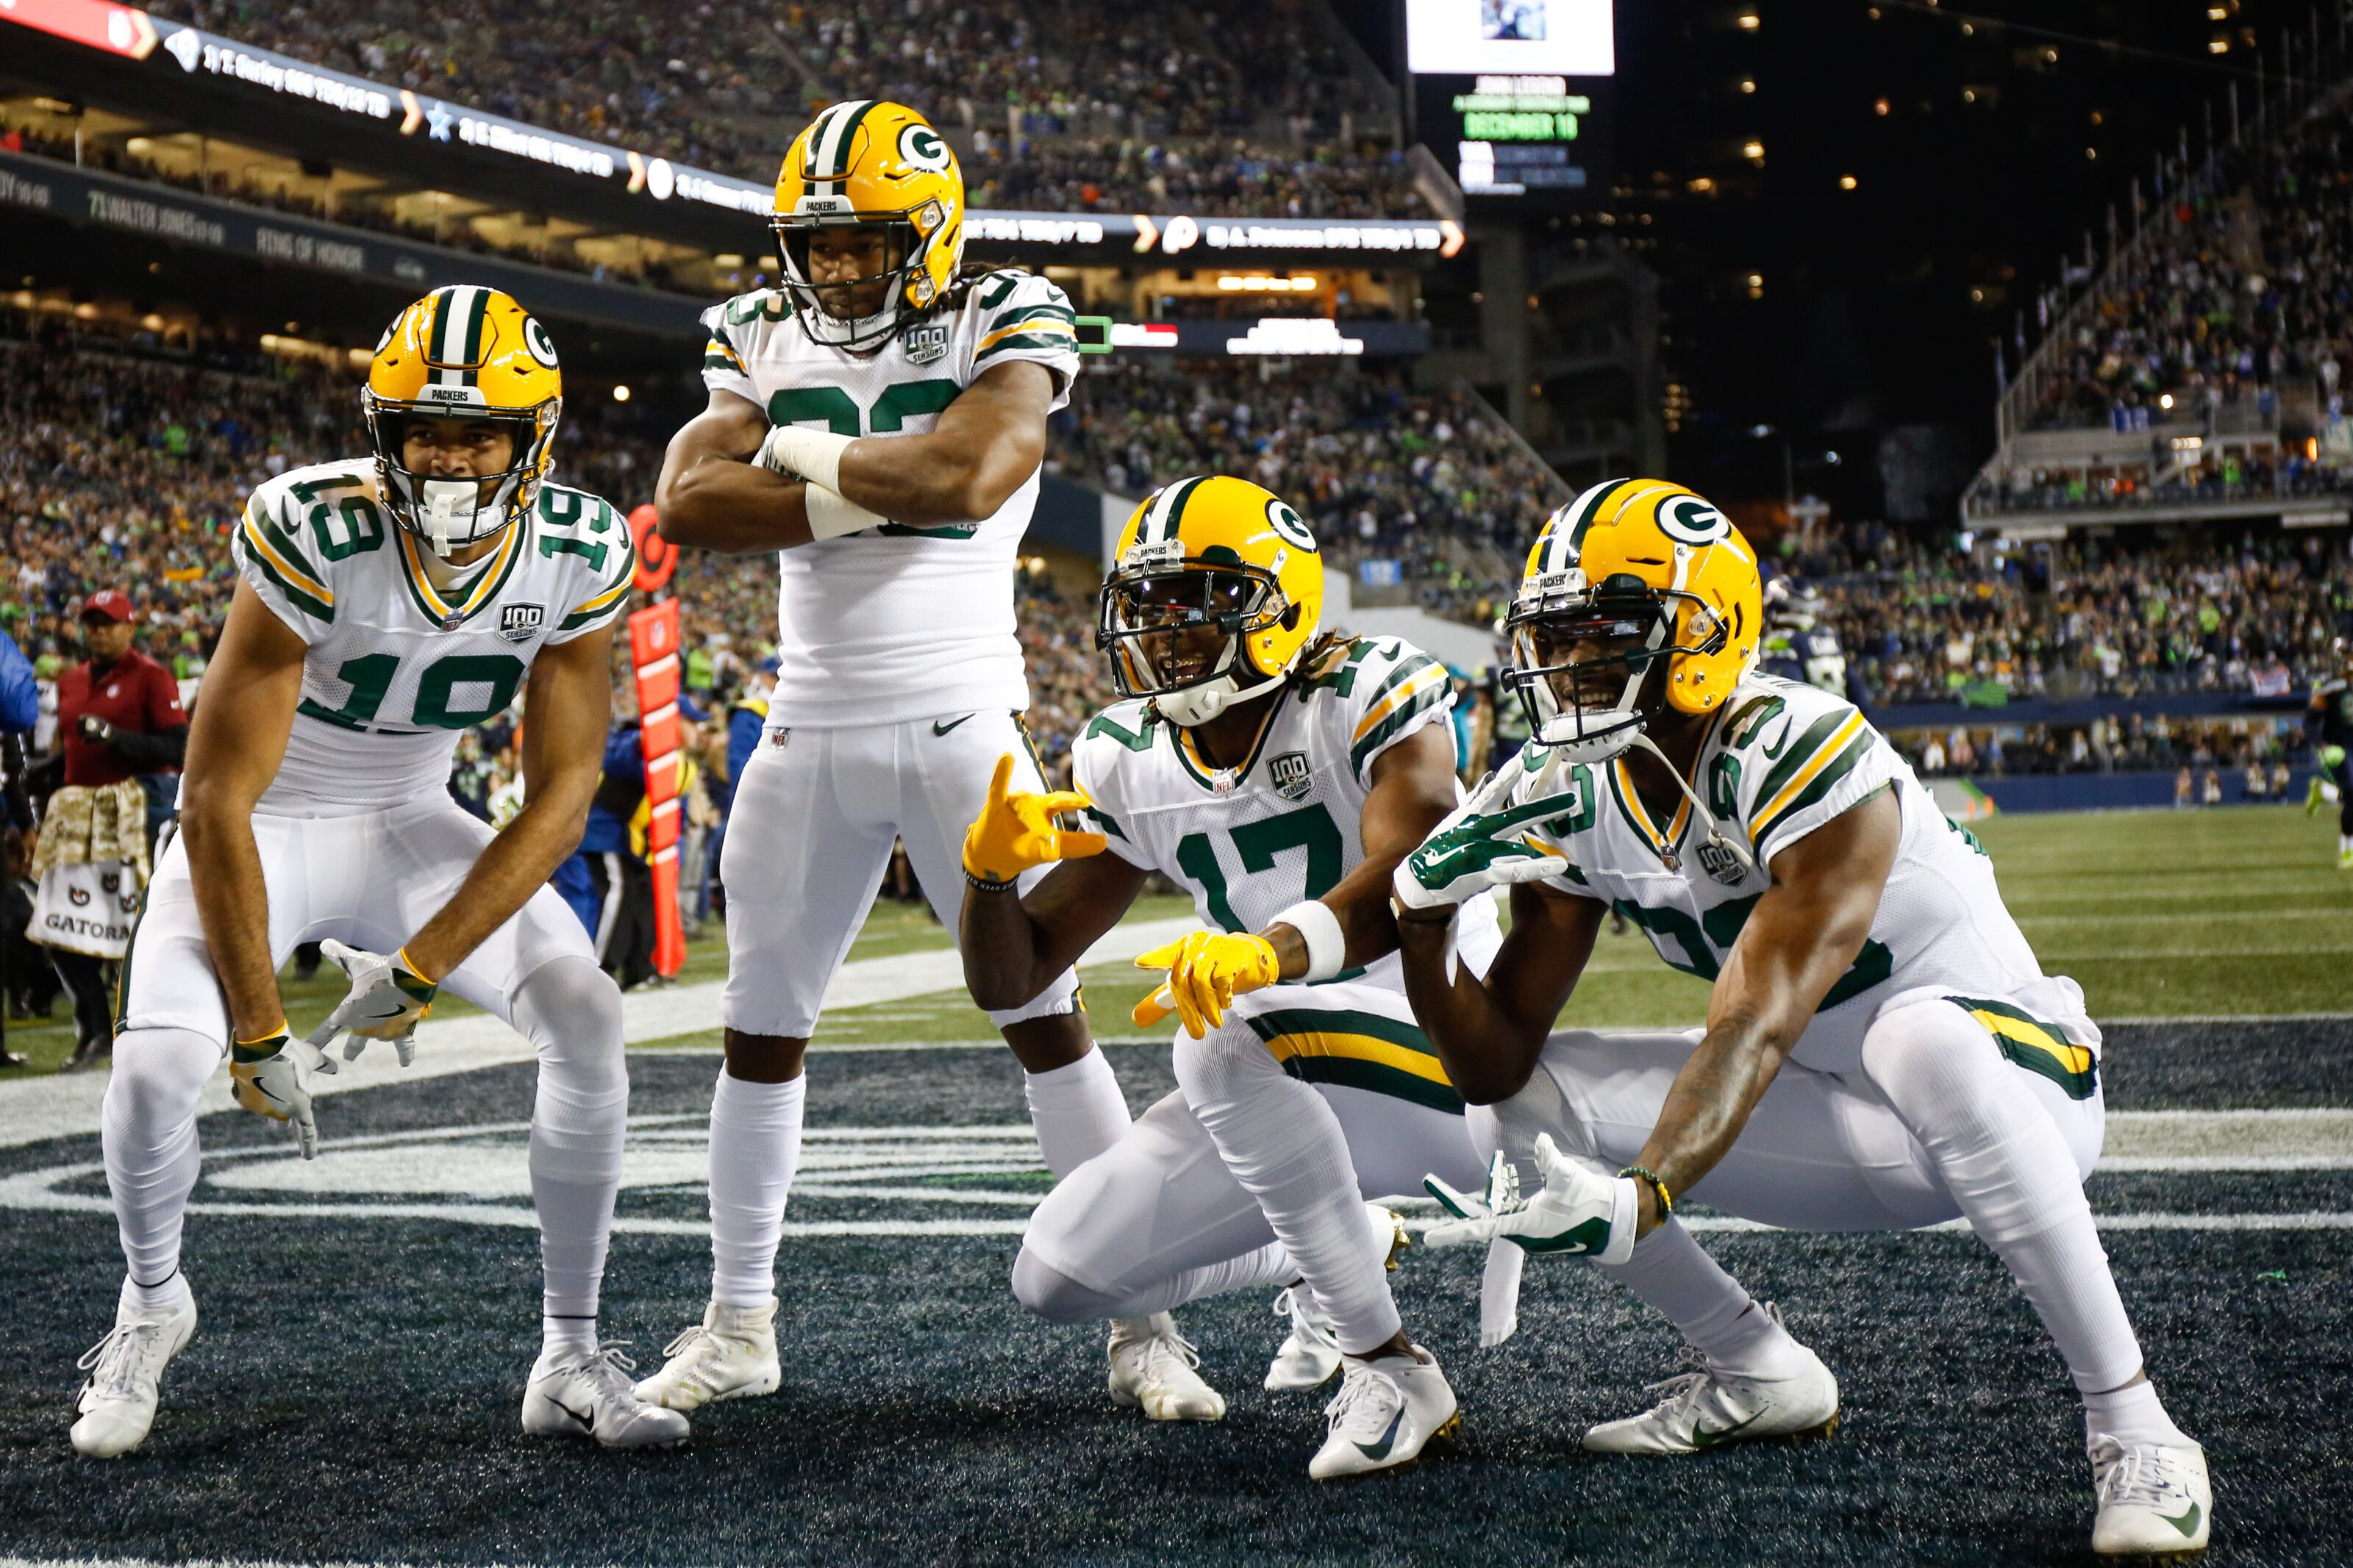 Green Bay Packers: FanSided predicts 11-5 record in 2019